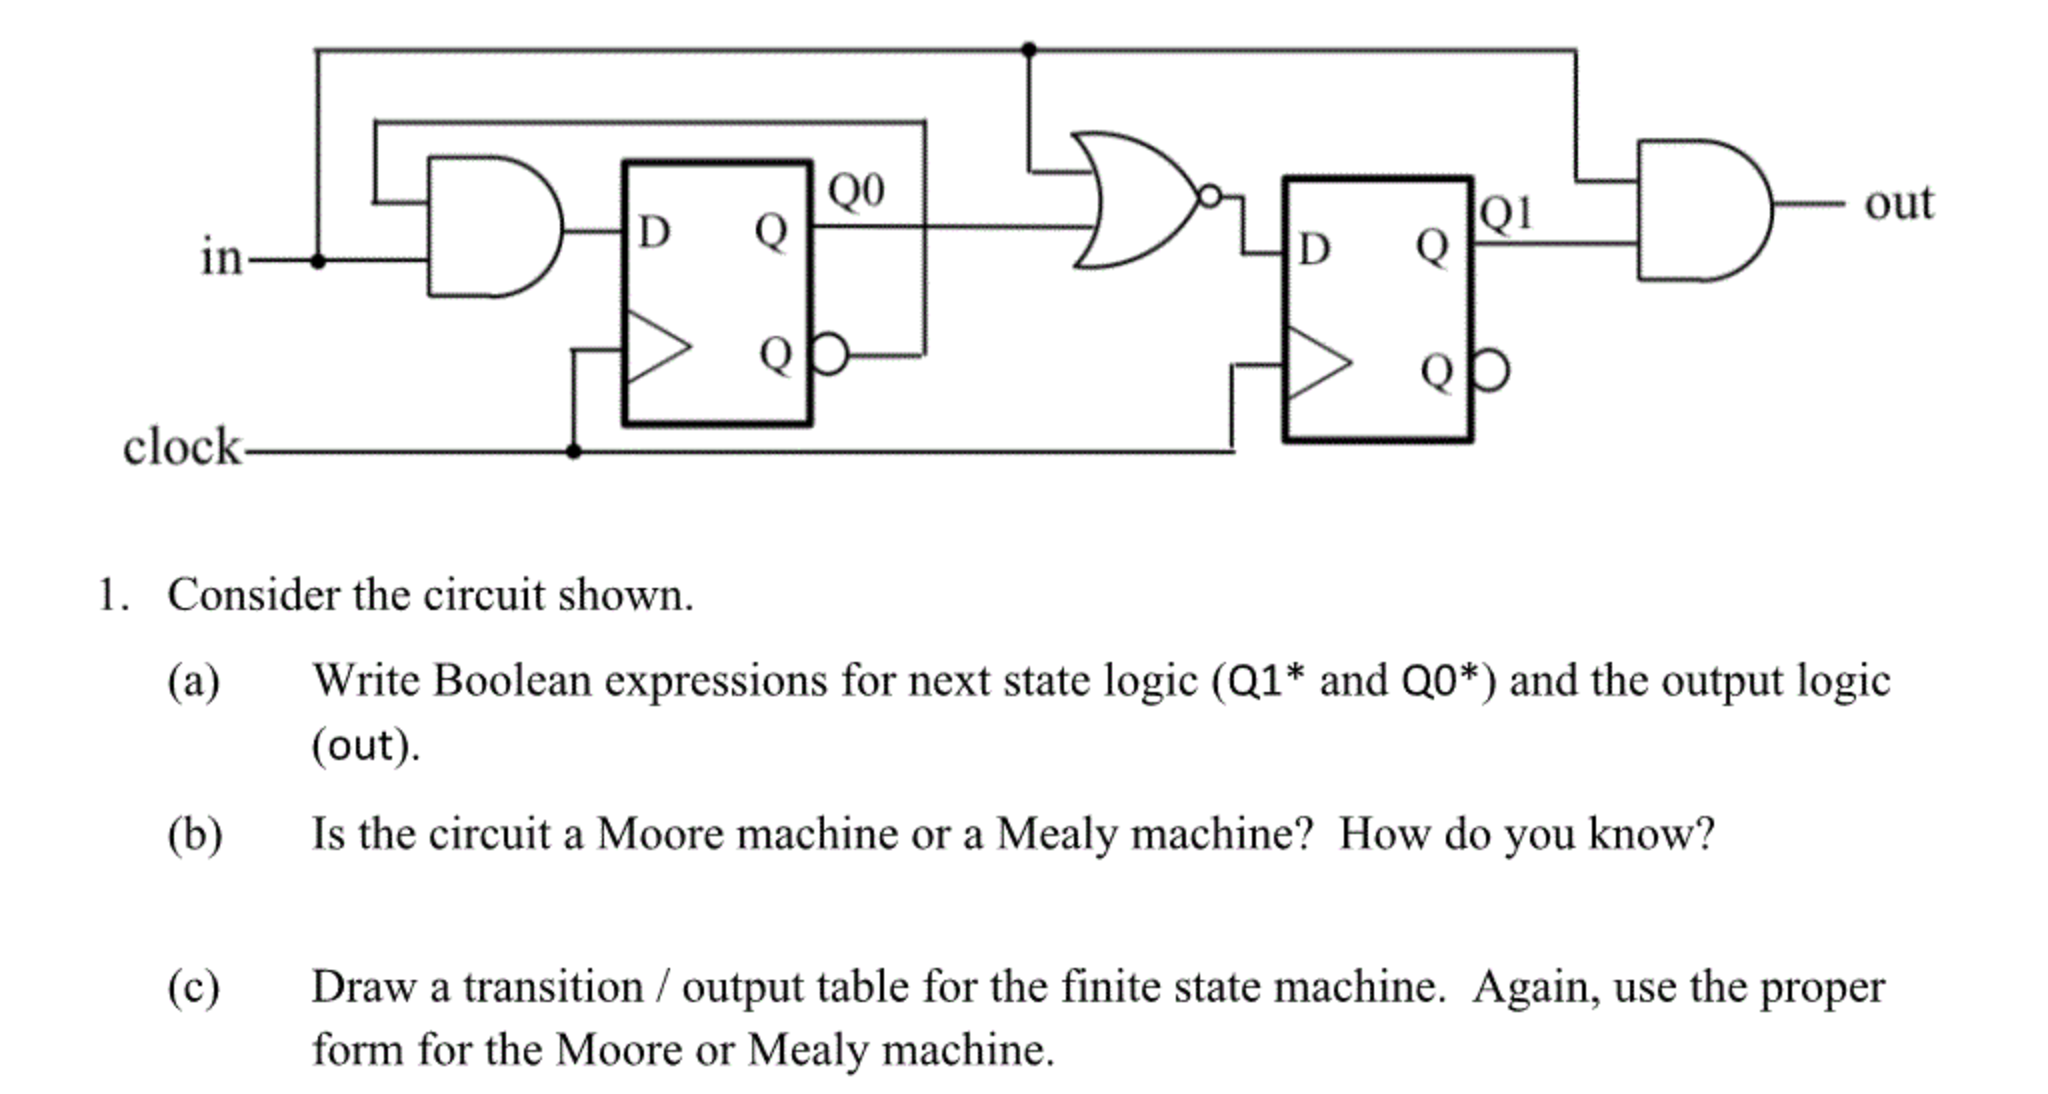 Consider the circuit shown. Write Boolean express